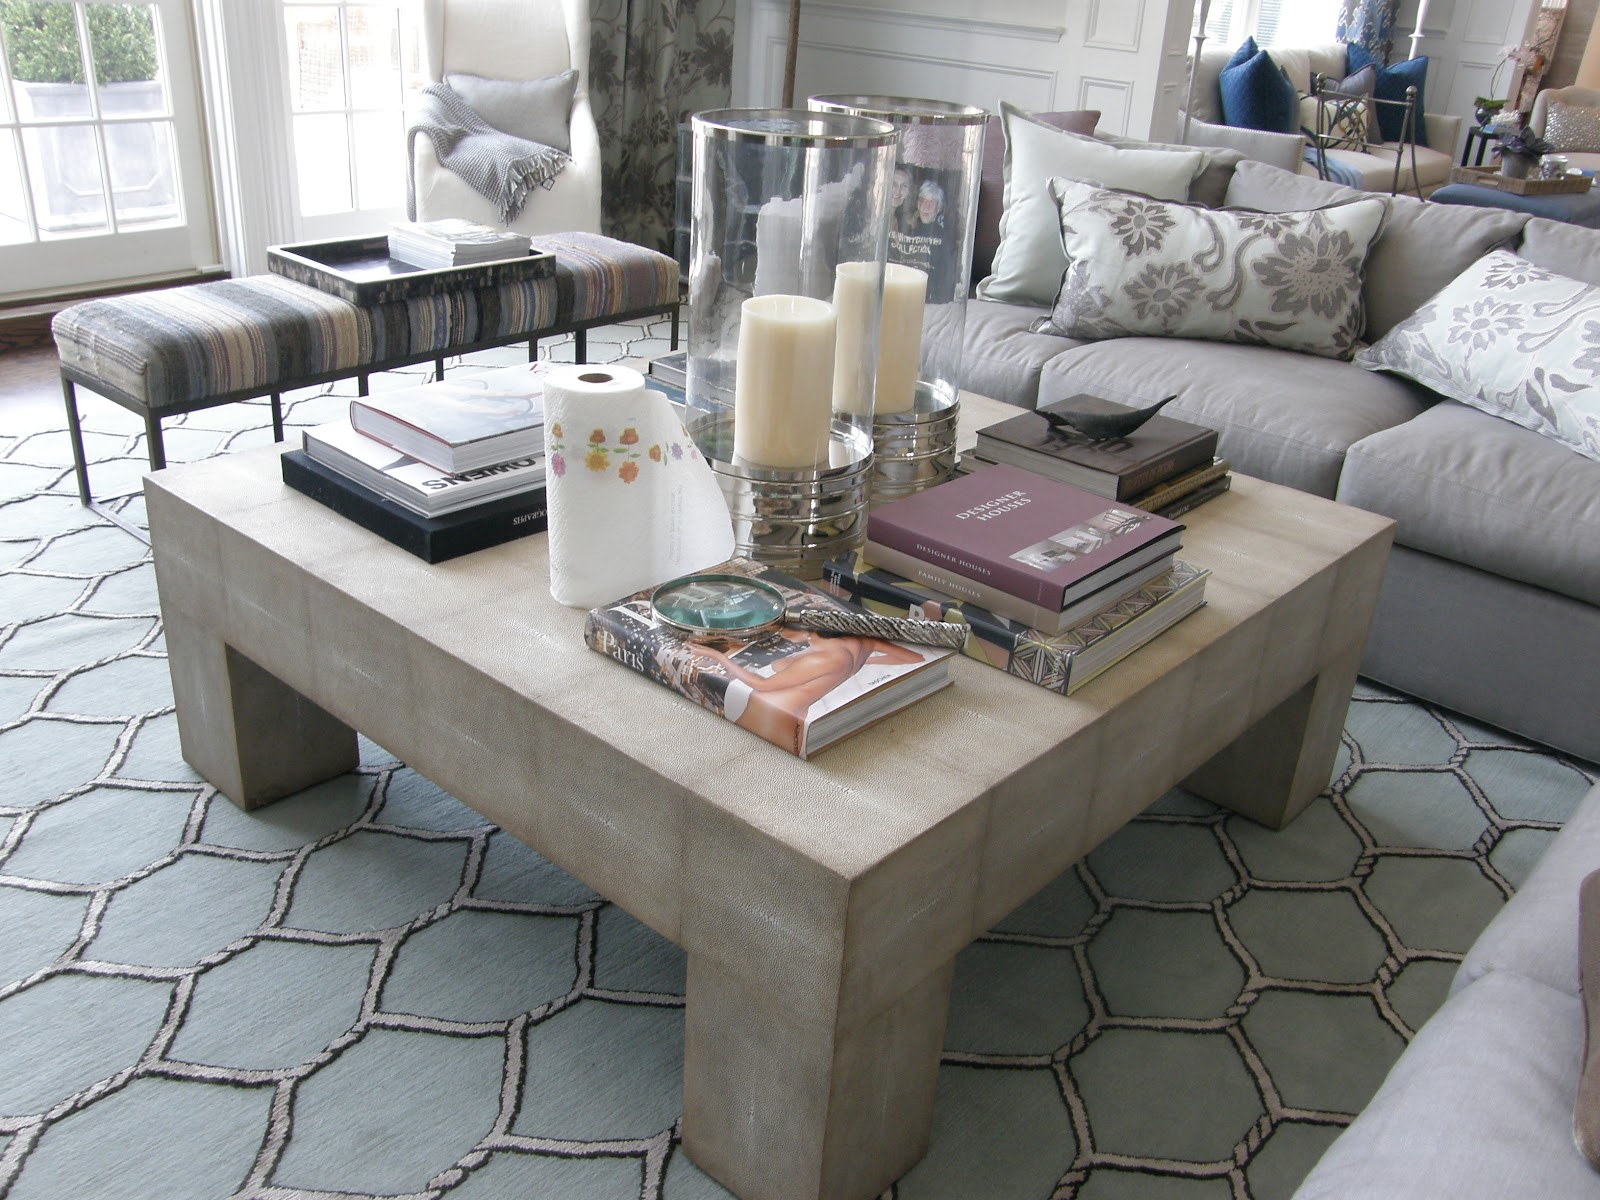 Sybaritic Spaces First Look at 2012 Hampton Showhouse